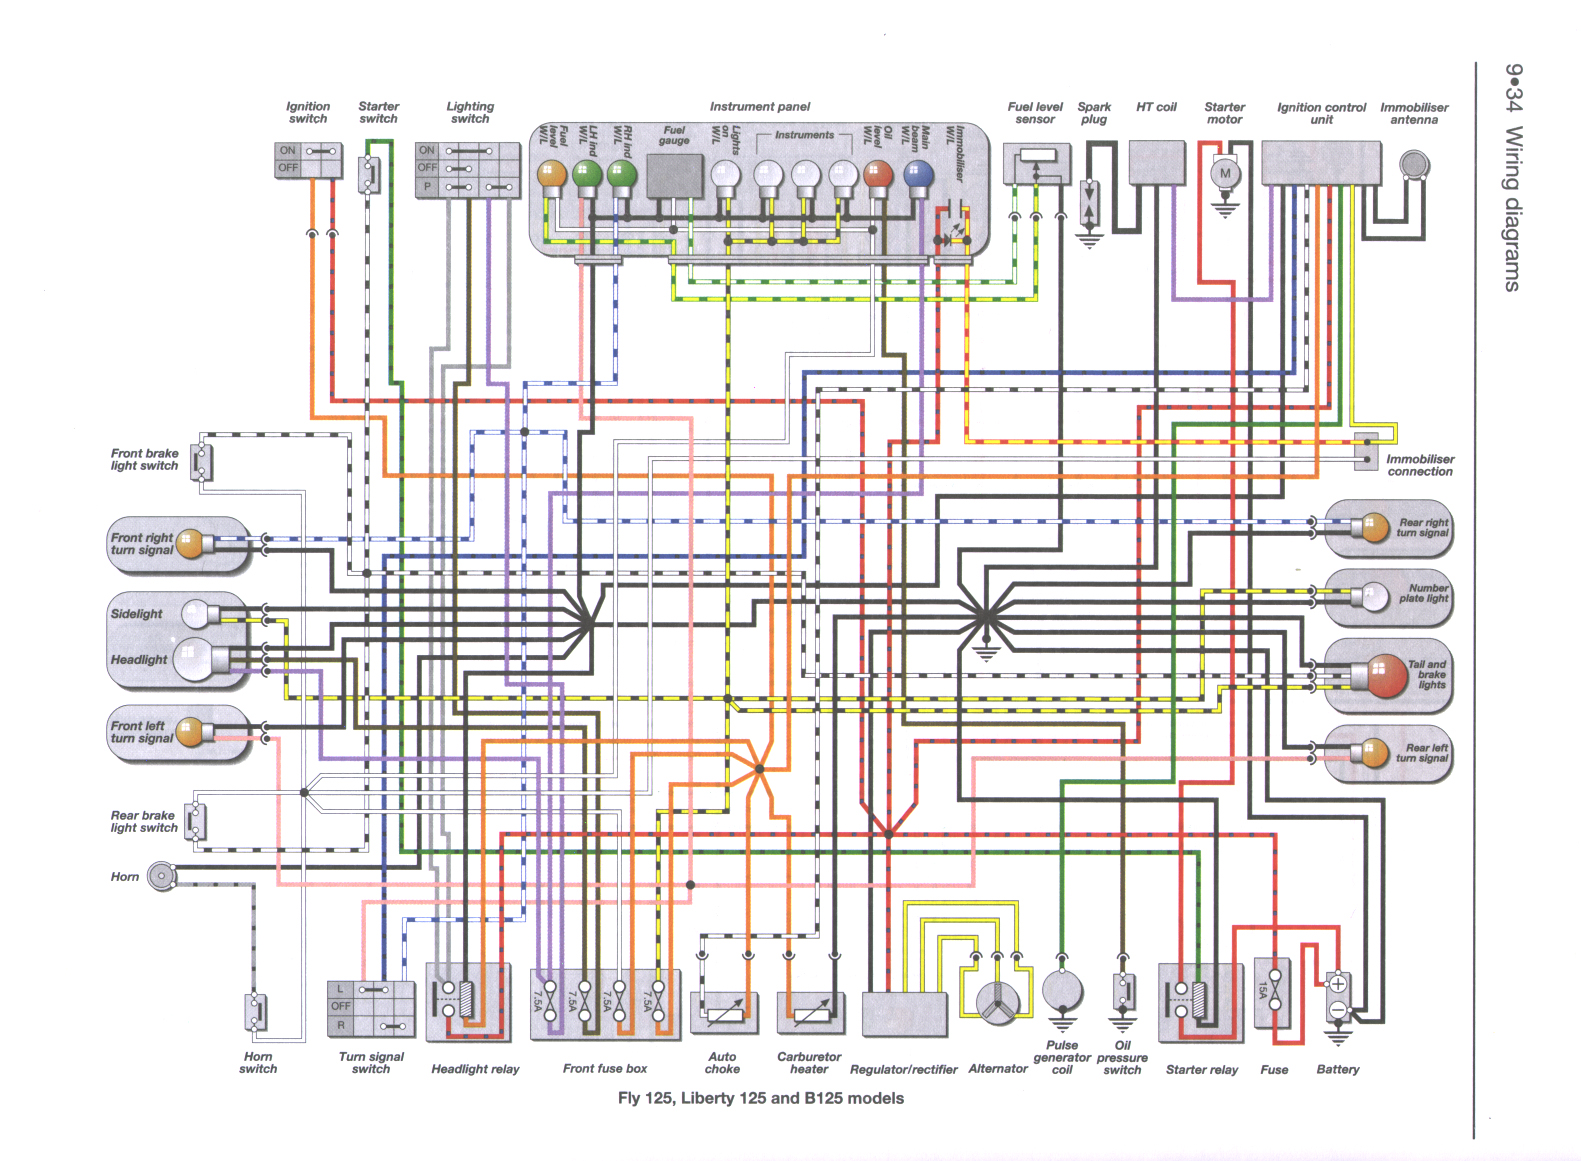 Diagram Wiring Diagram Piaggio Zip Basic Electrical Wiring